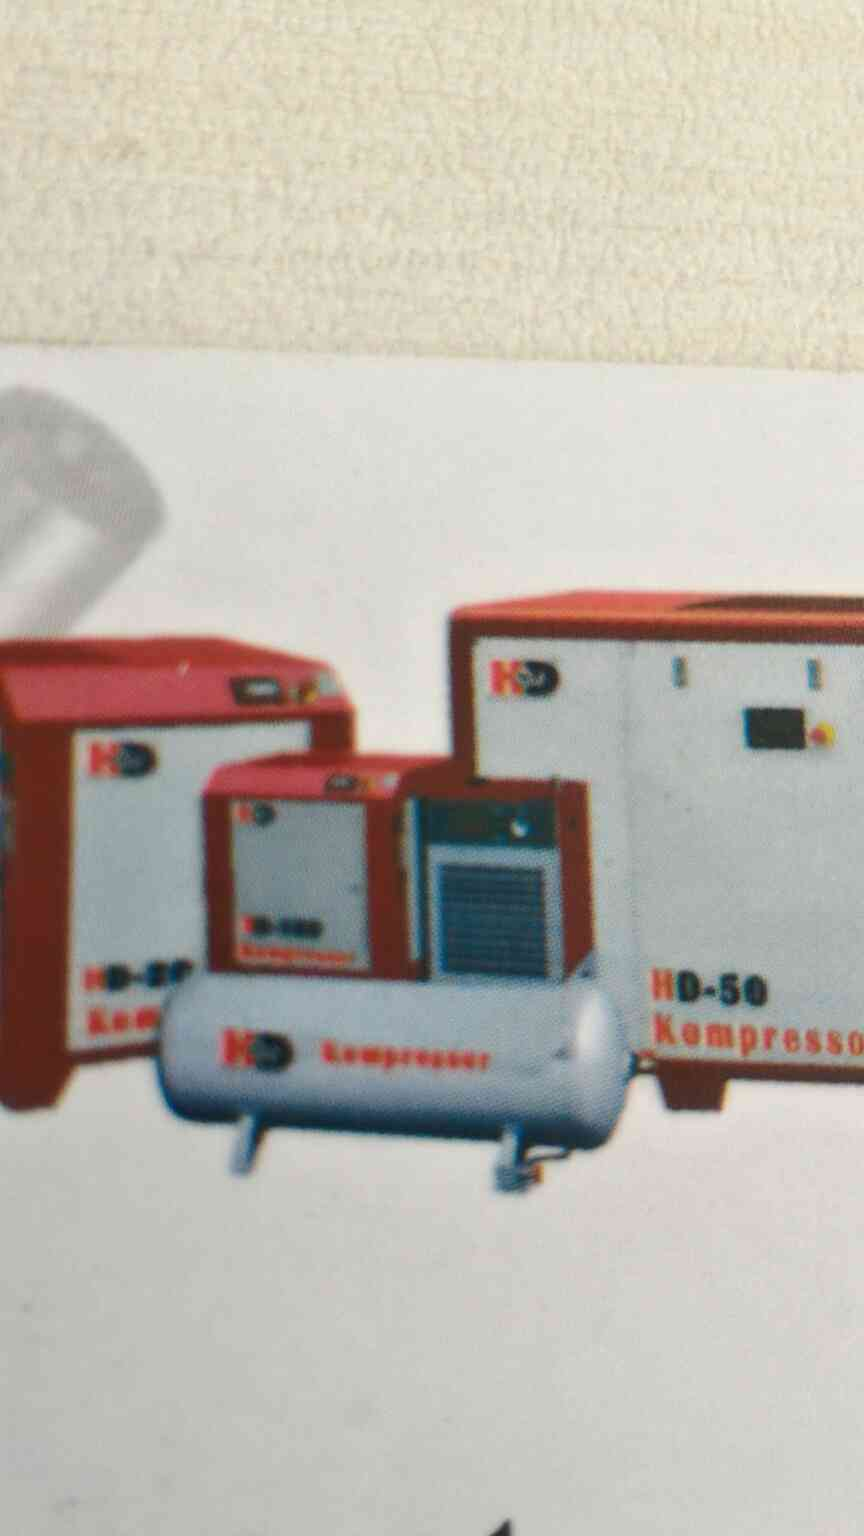 we are privide heavy duty screw air compressor in Ahmedabad     for more info www. hdequipment.in